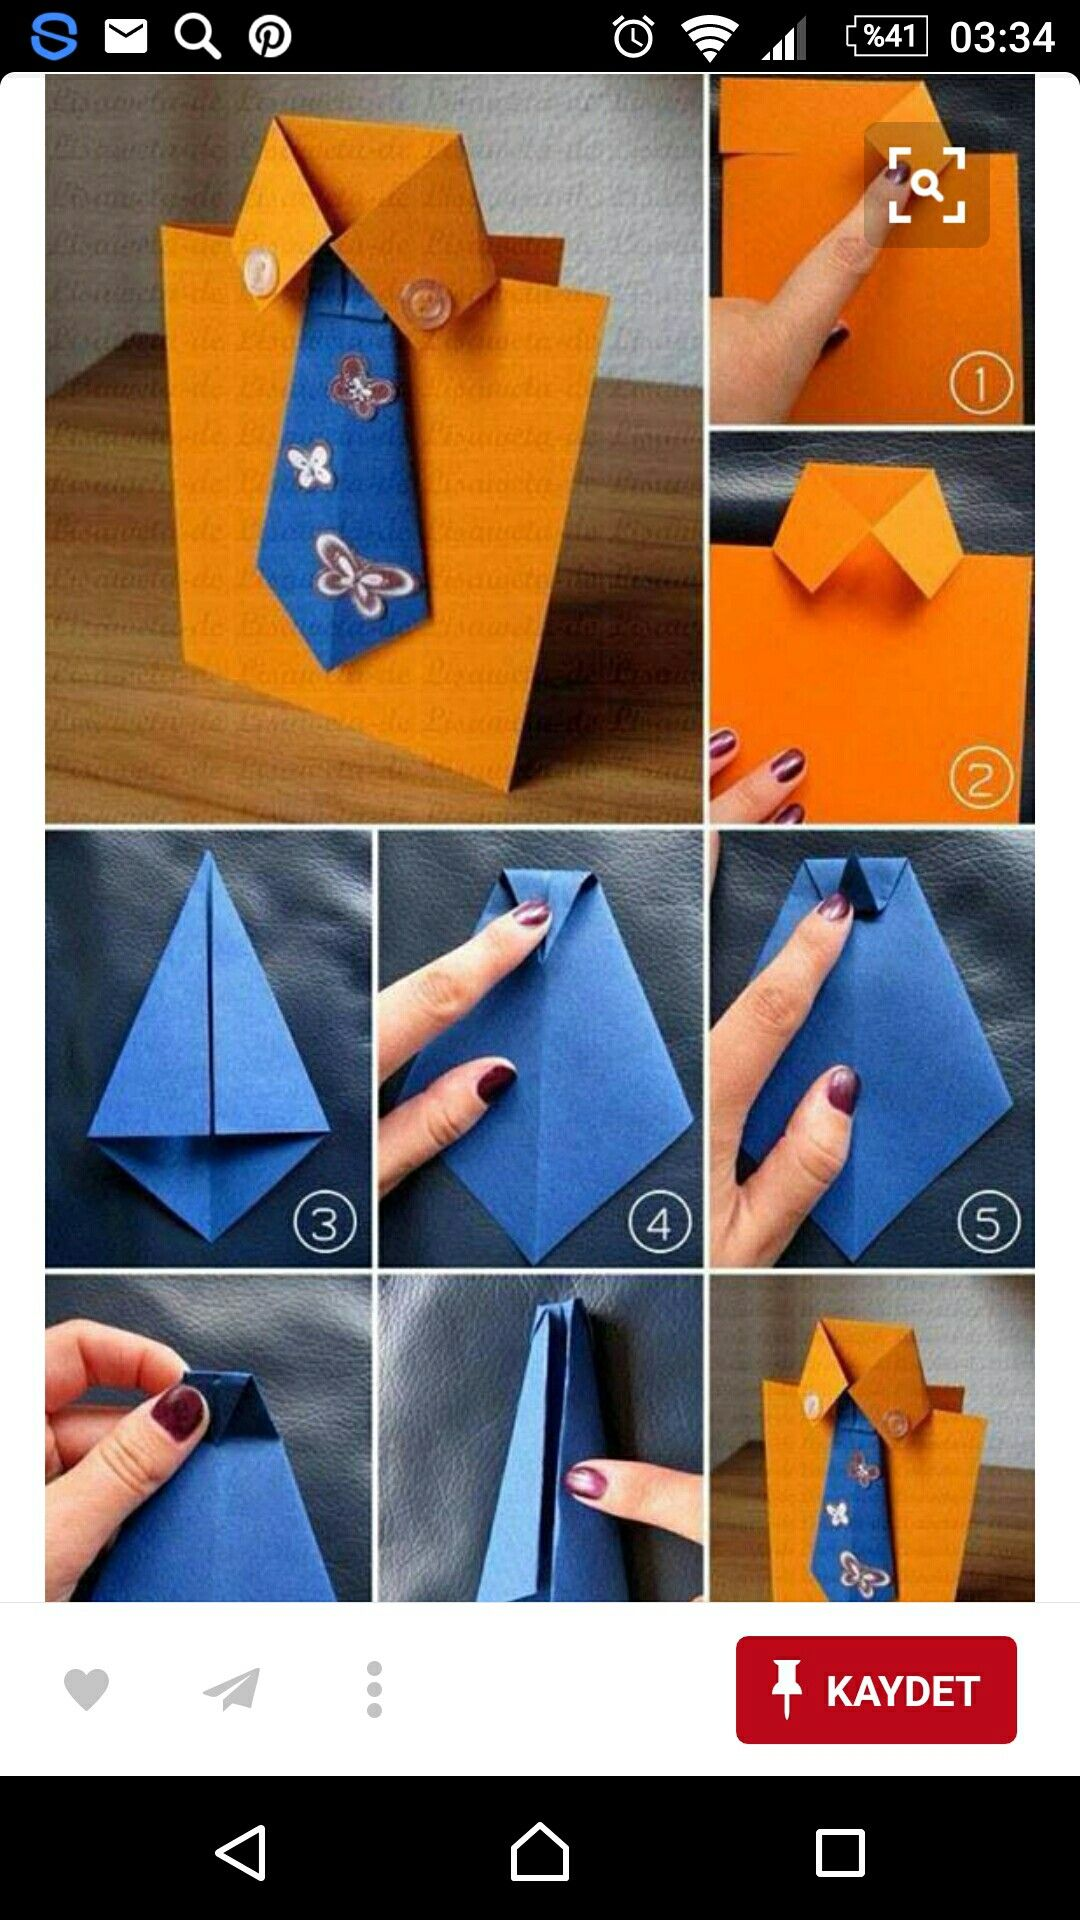 Pin By Filiz Algl On Okul Fikir Pinterest Swan Origami Diagram Cute And Easy Diy Fathers Day Card Ideas To Make At Homediy Cards Tutorials For Making Shirt Cardstie Theme